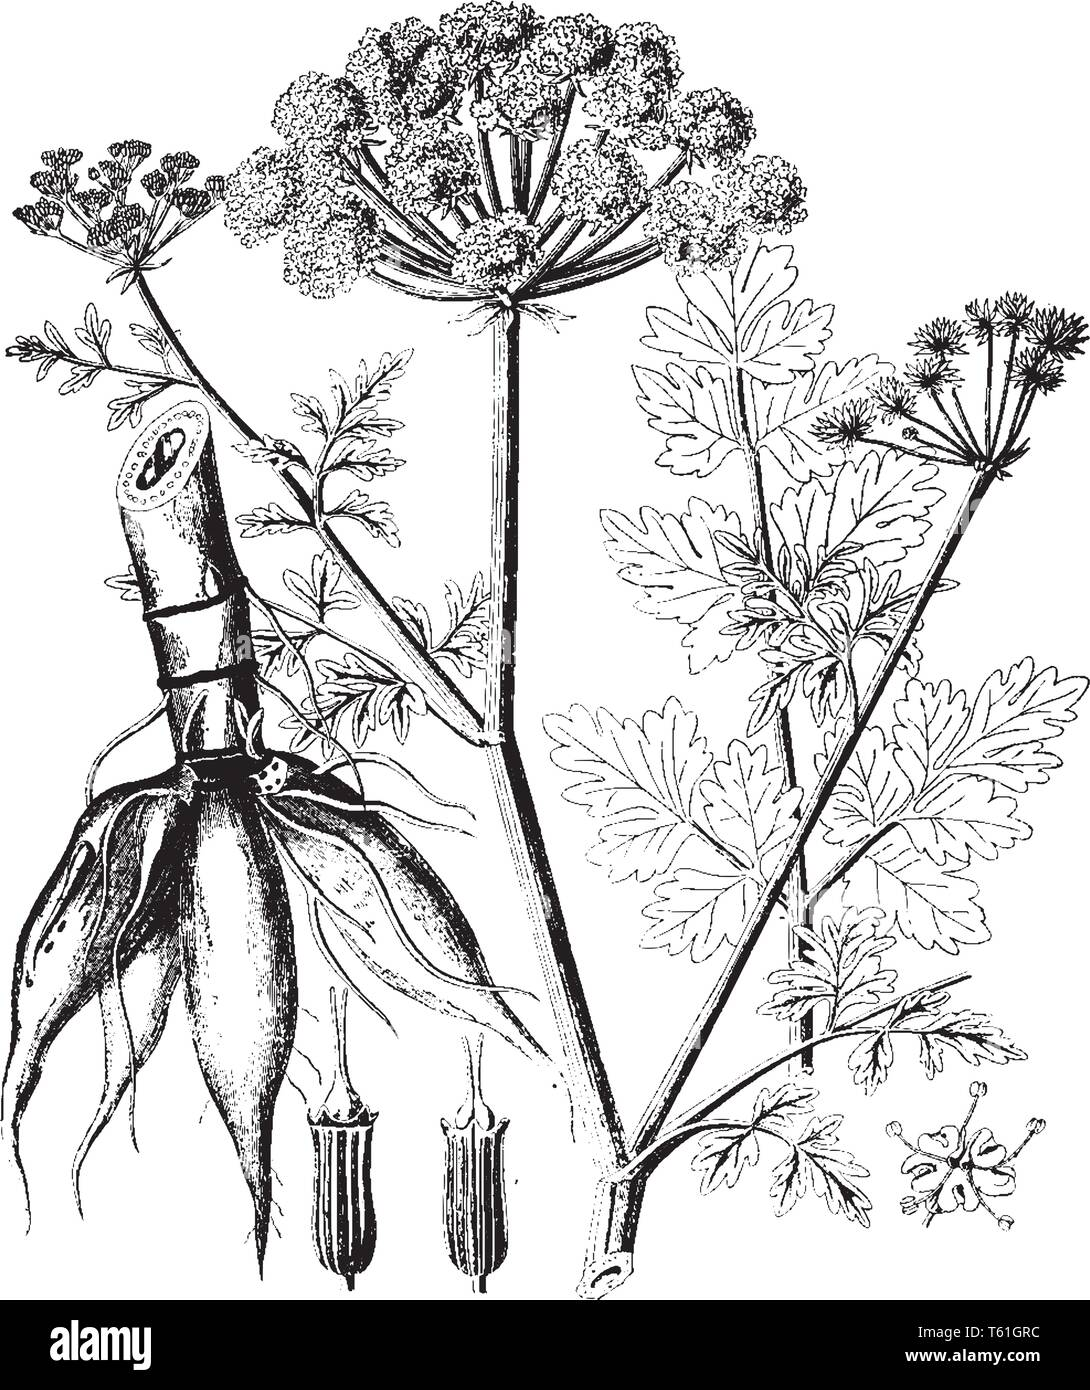 Most poisonous indigenous plant in Britain. It is a member of the Umbellifer family and is found in ditches, damp meadows, in steams, by riverbanks, a - Stock Vector